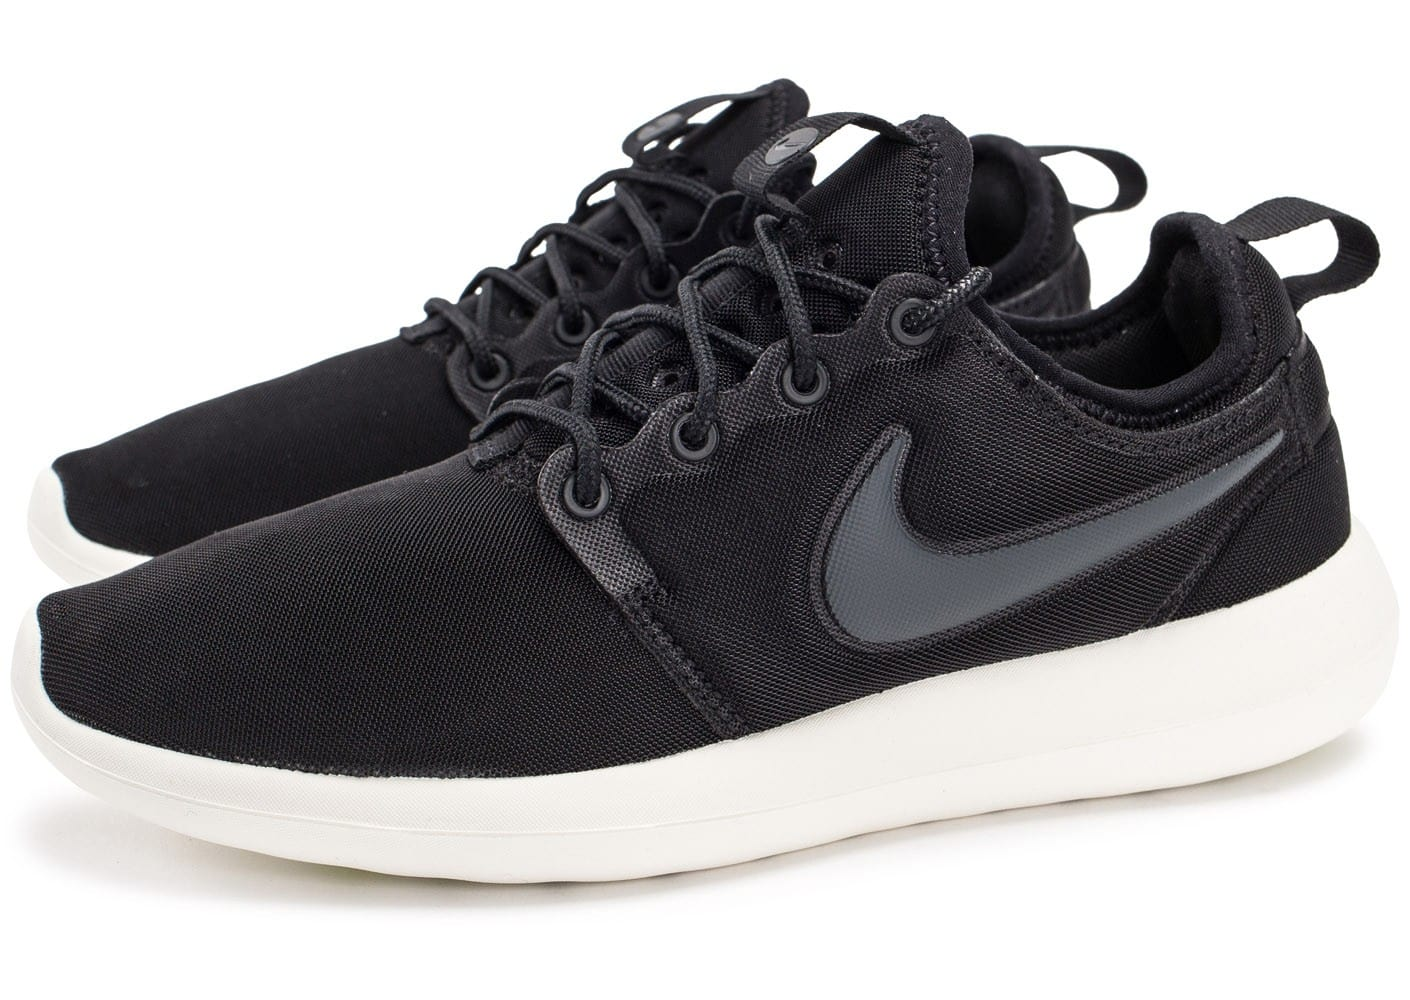 nike roshe 2 w noire et grise chaussures chaussures chausport. Black Bedroom Furniture Sets. Home Design Ideas